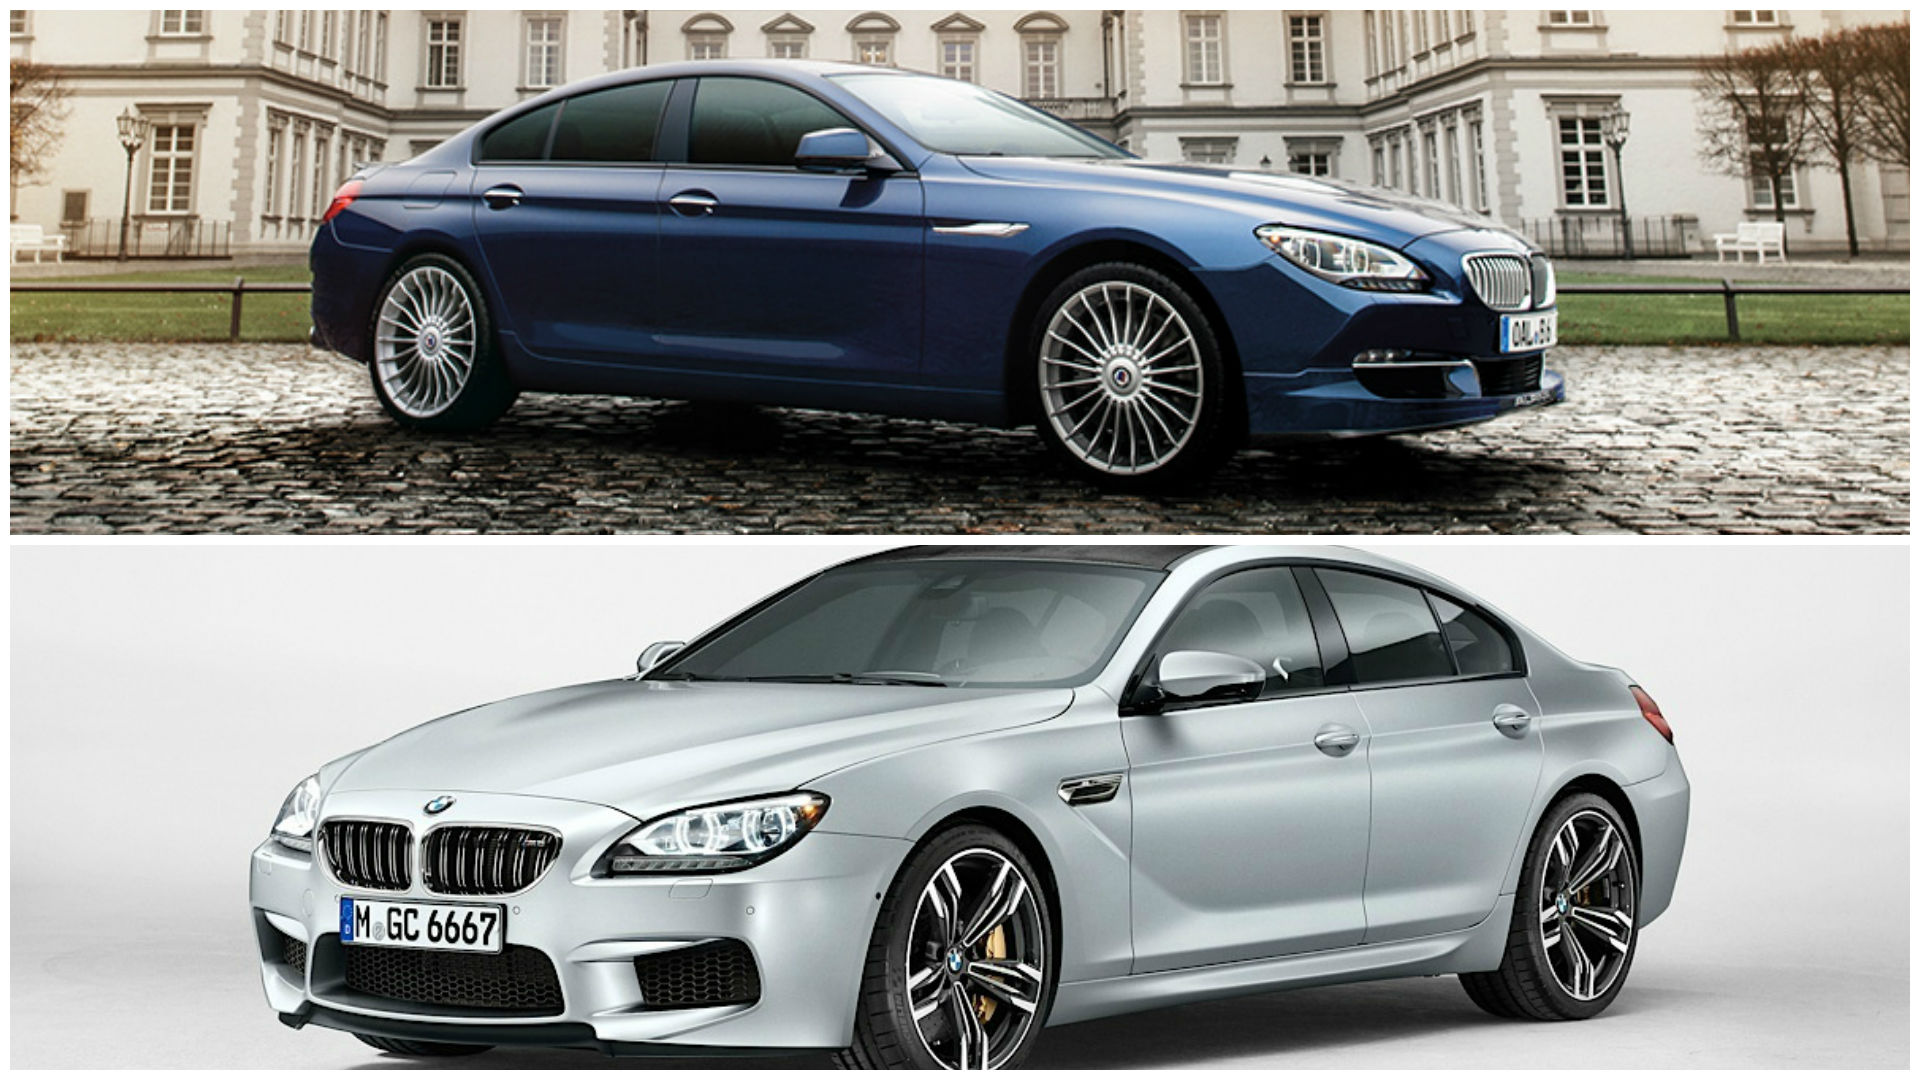 bmw m6 gran coupe vs alpina b6 gran coupe what makes them. Black Bedroom Furniture Sets. Home Design Ideas